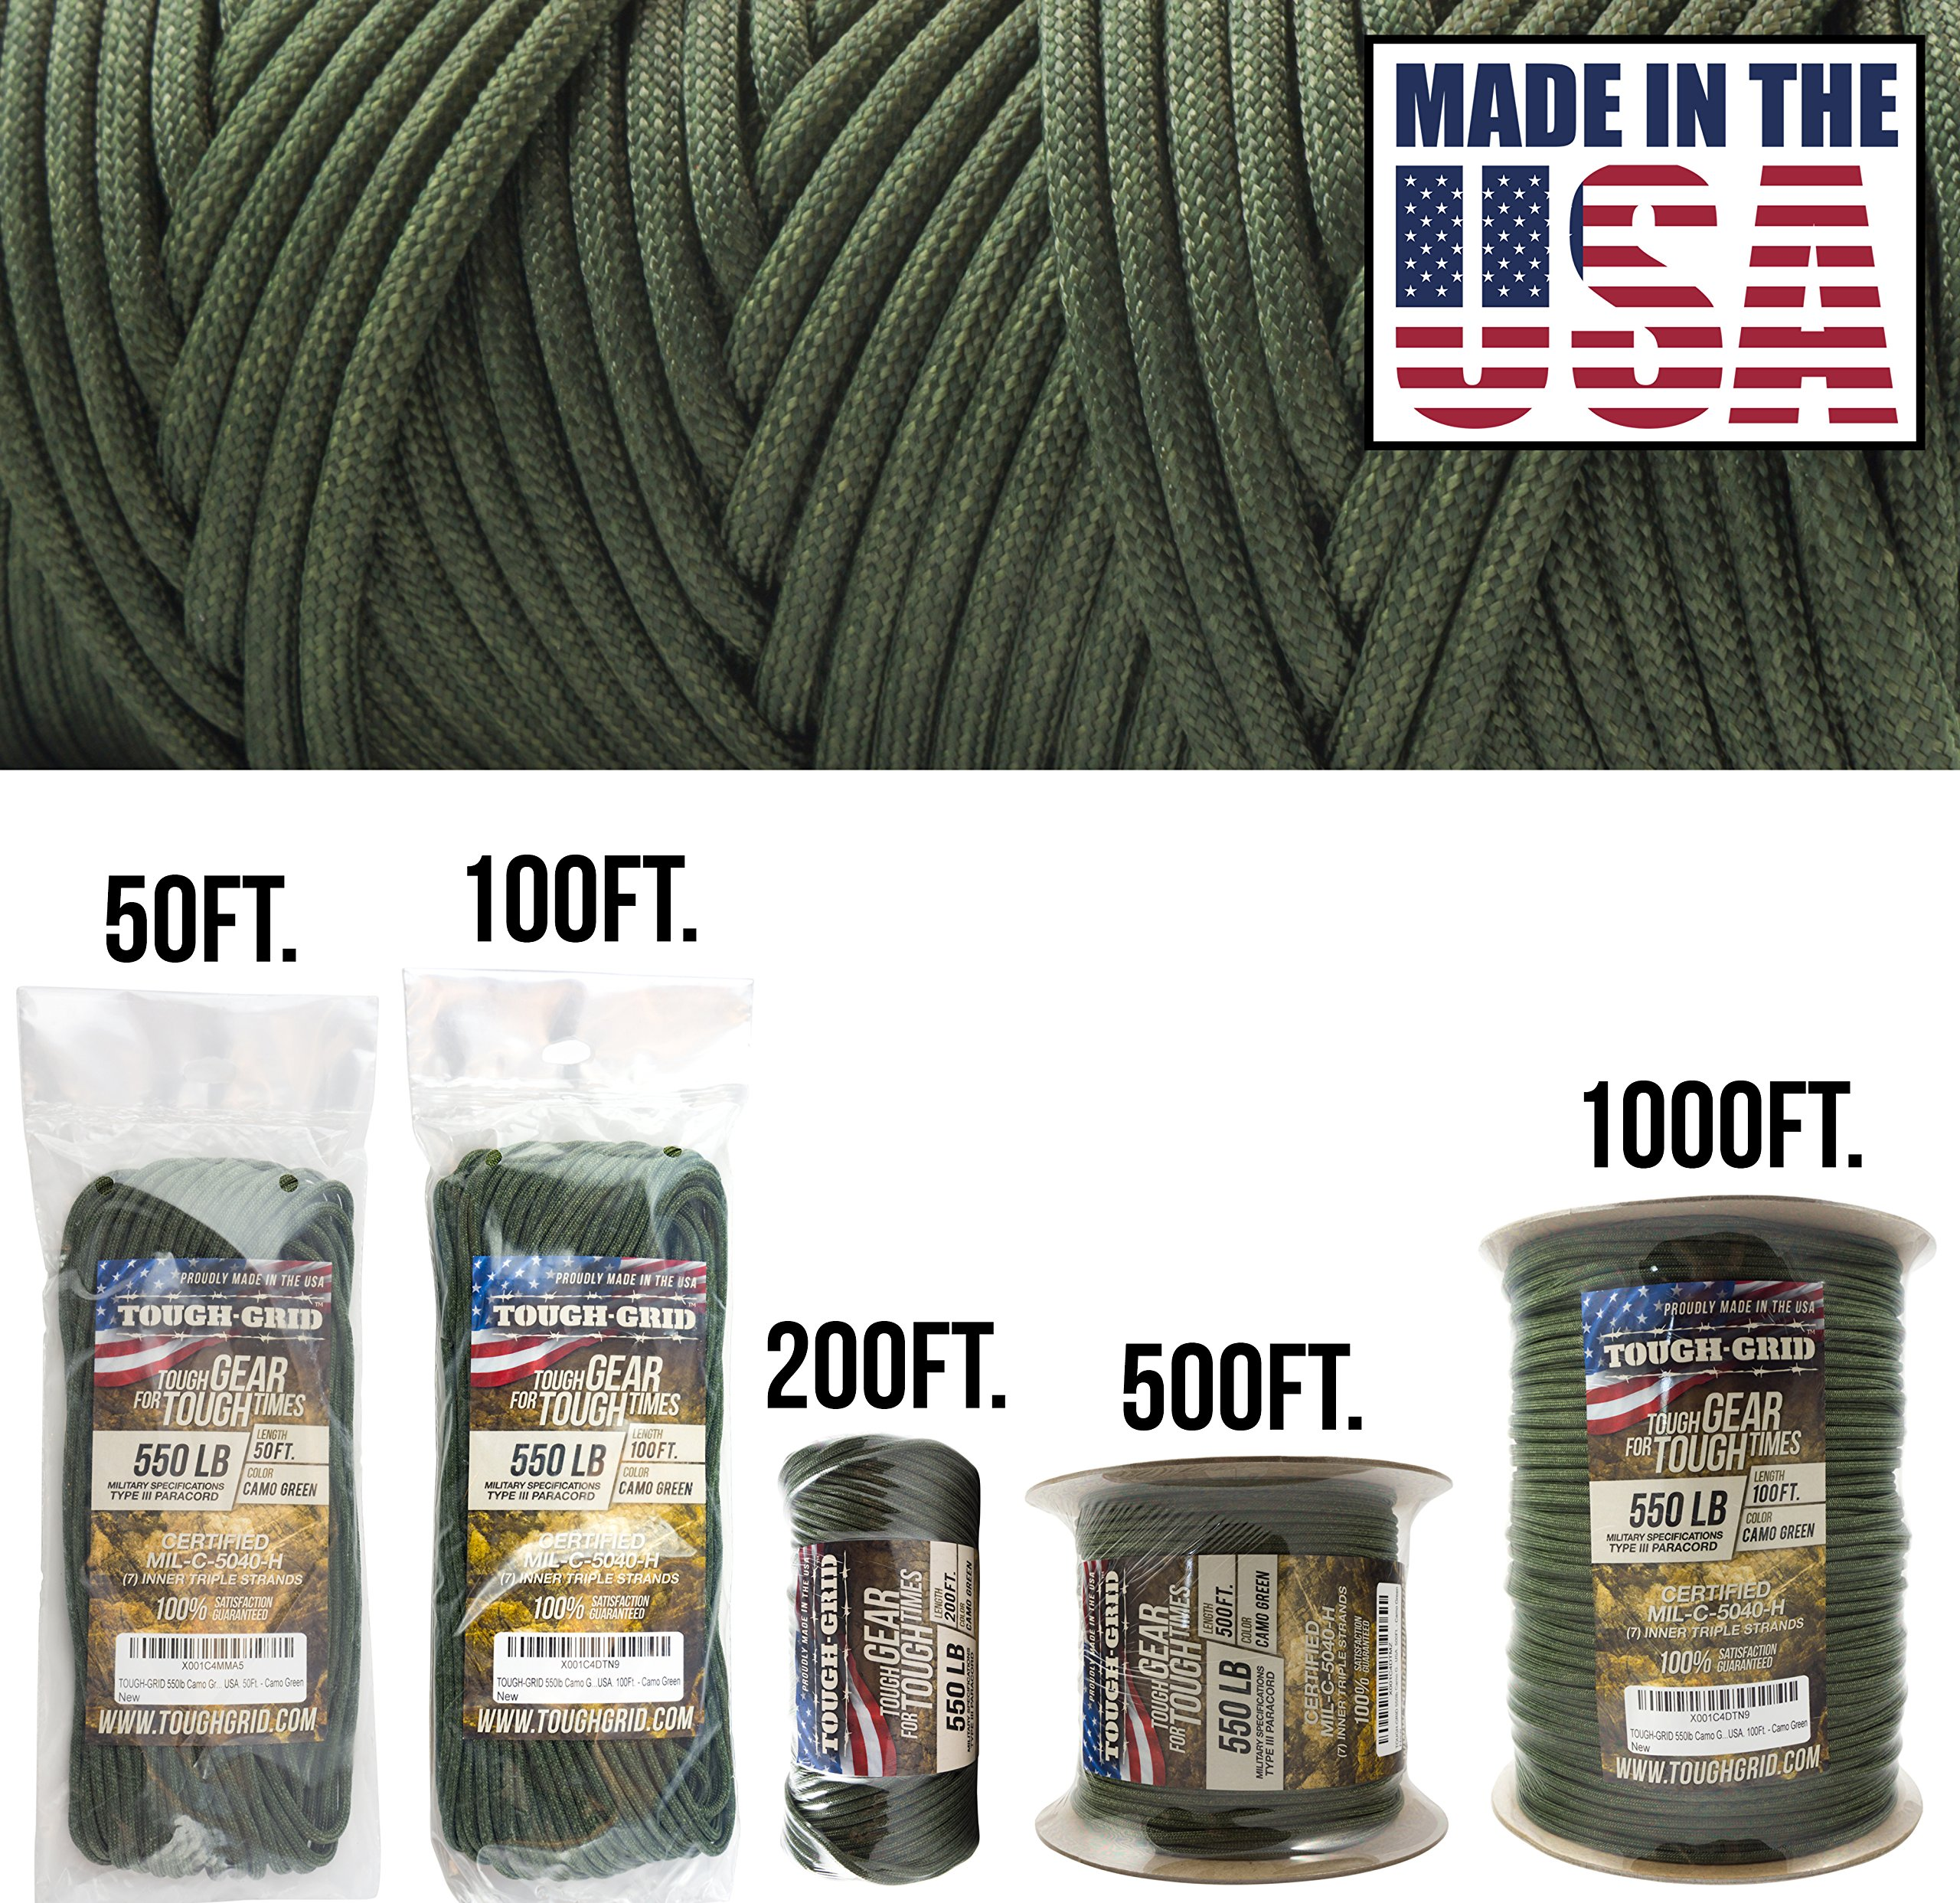 TOUGH-GRID 550lb Camo Green Paracord/Parachute Cord - 100% Nylon Genuine Mil-Spec Type III Paracord Used by The US Military - Great for Bracelets and Lanyards - Made in The USA. 50Ft. - Camo Green